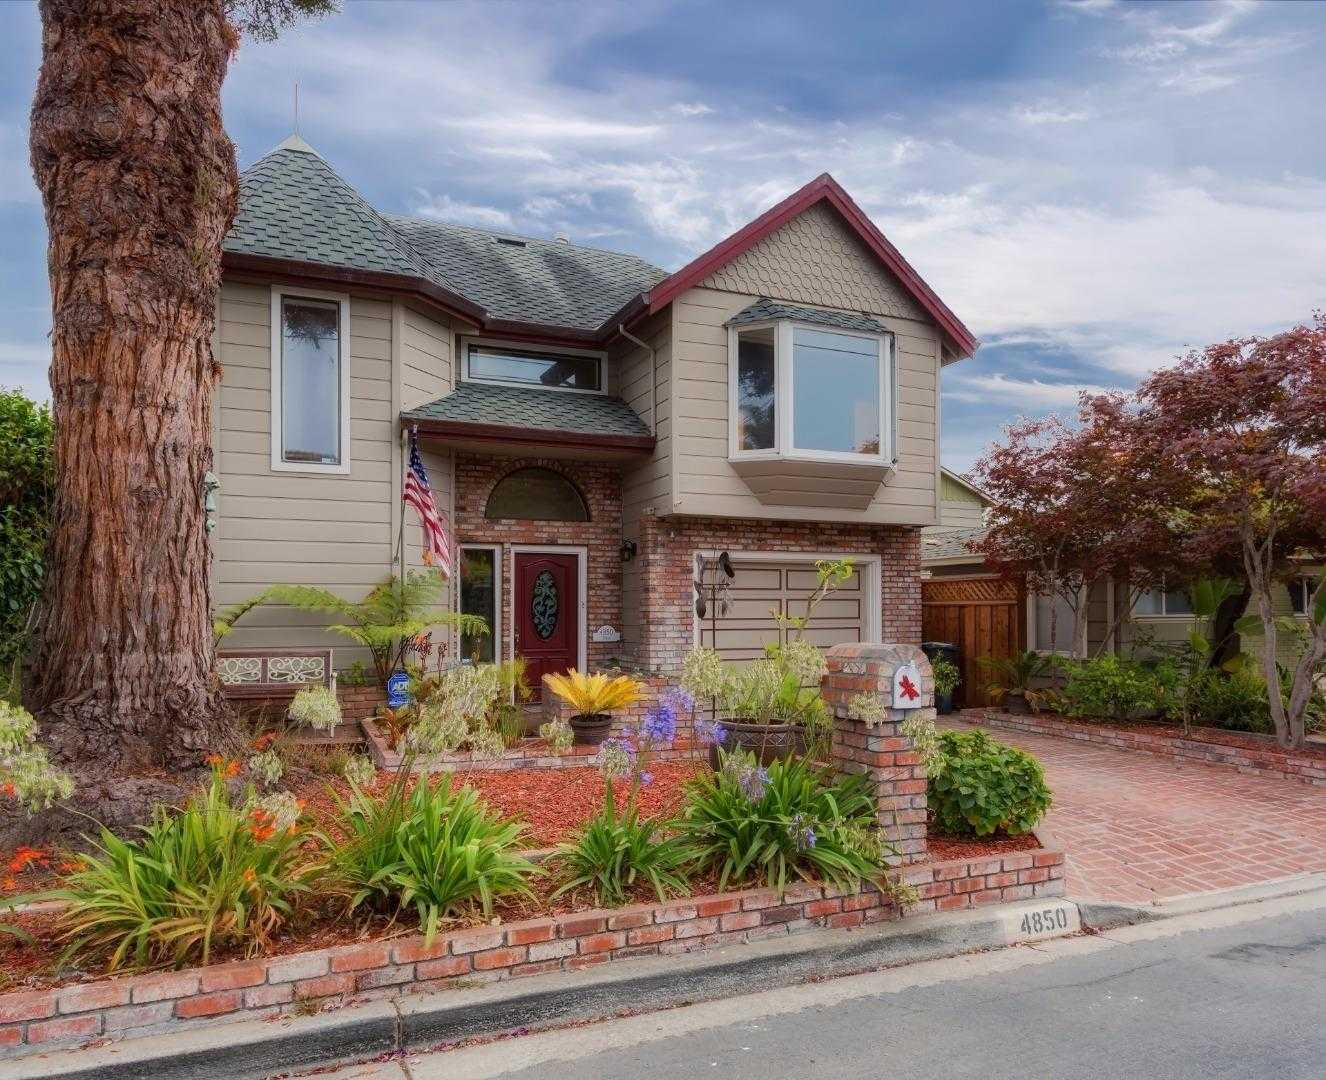 $1,449,000 - 3Br/3Ba -  for Sale in Capitola